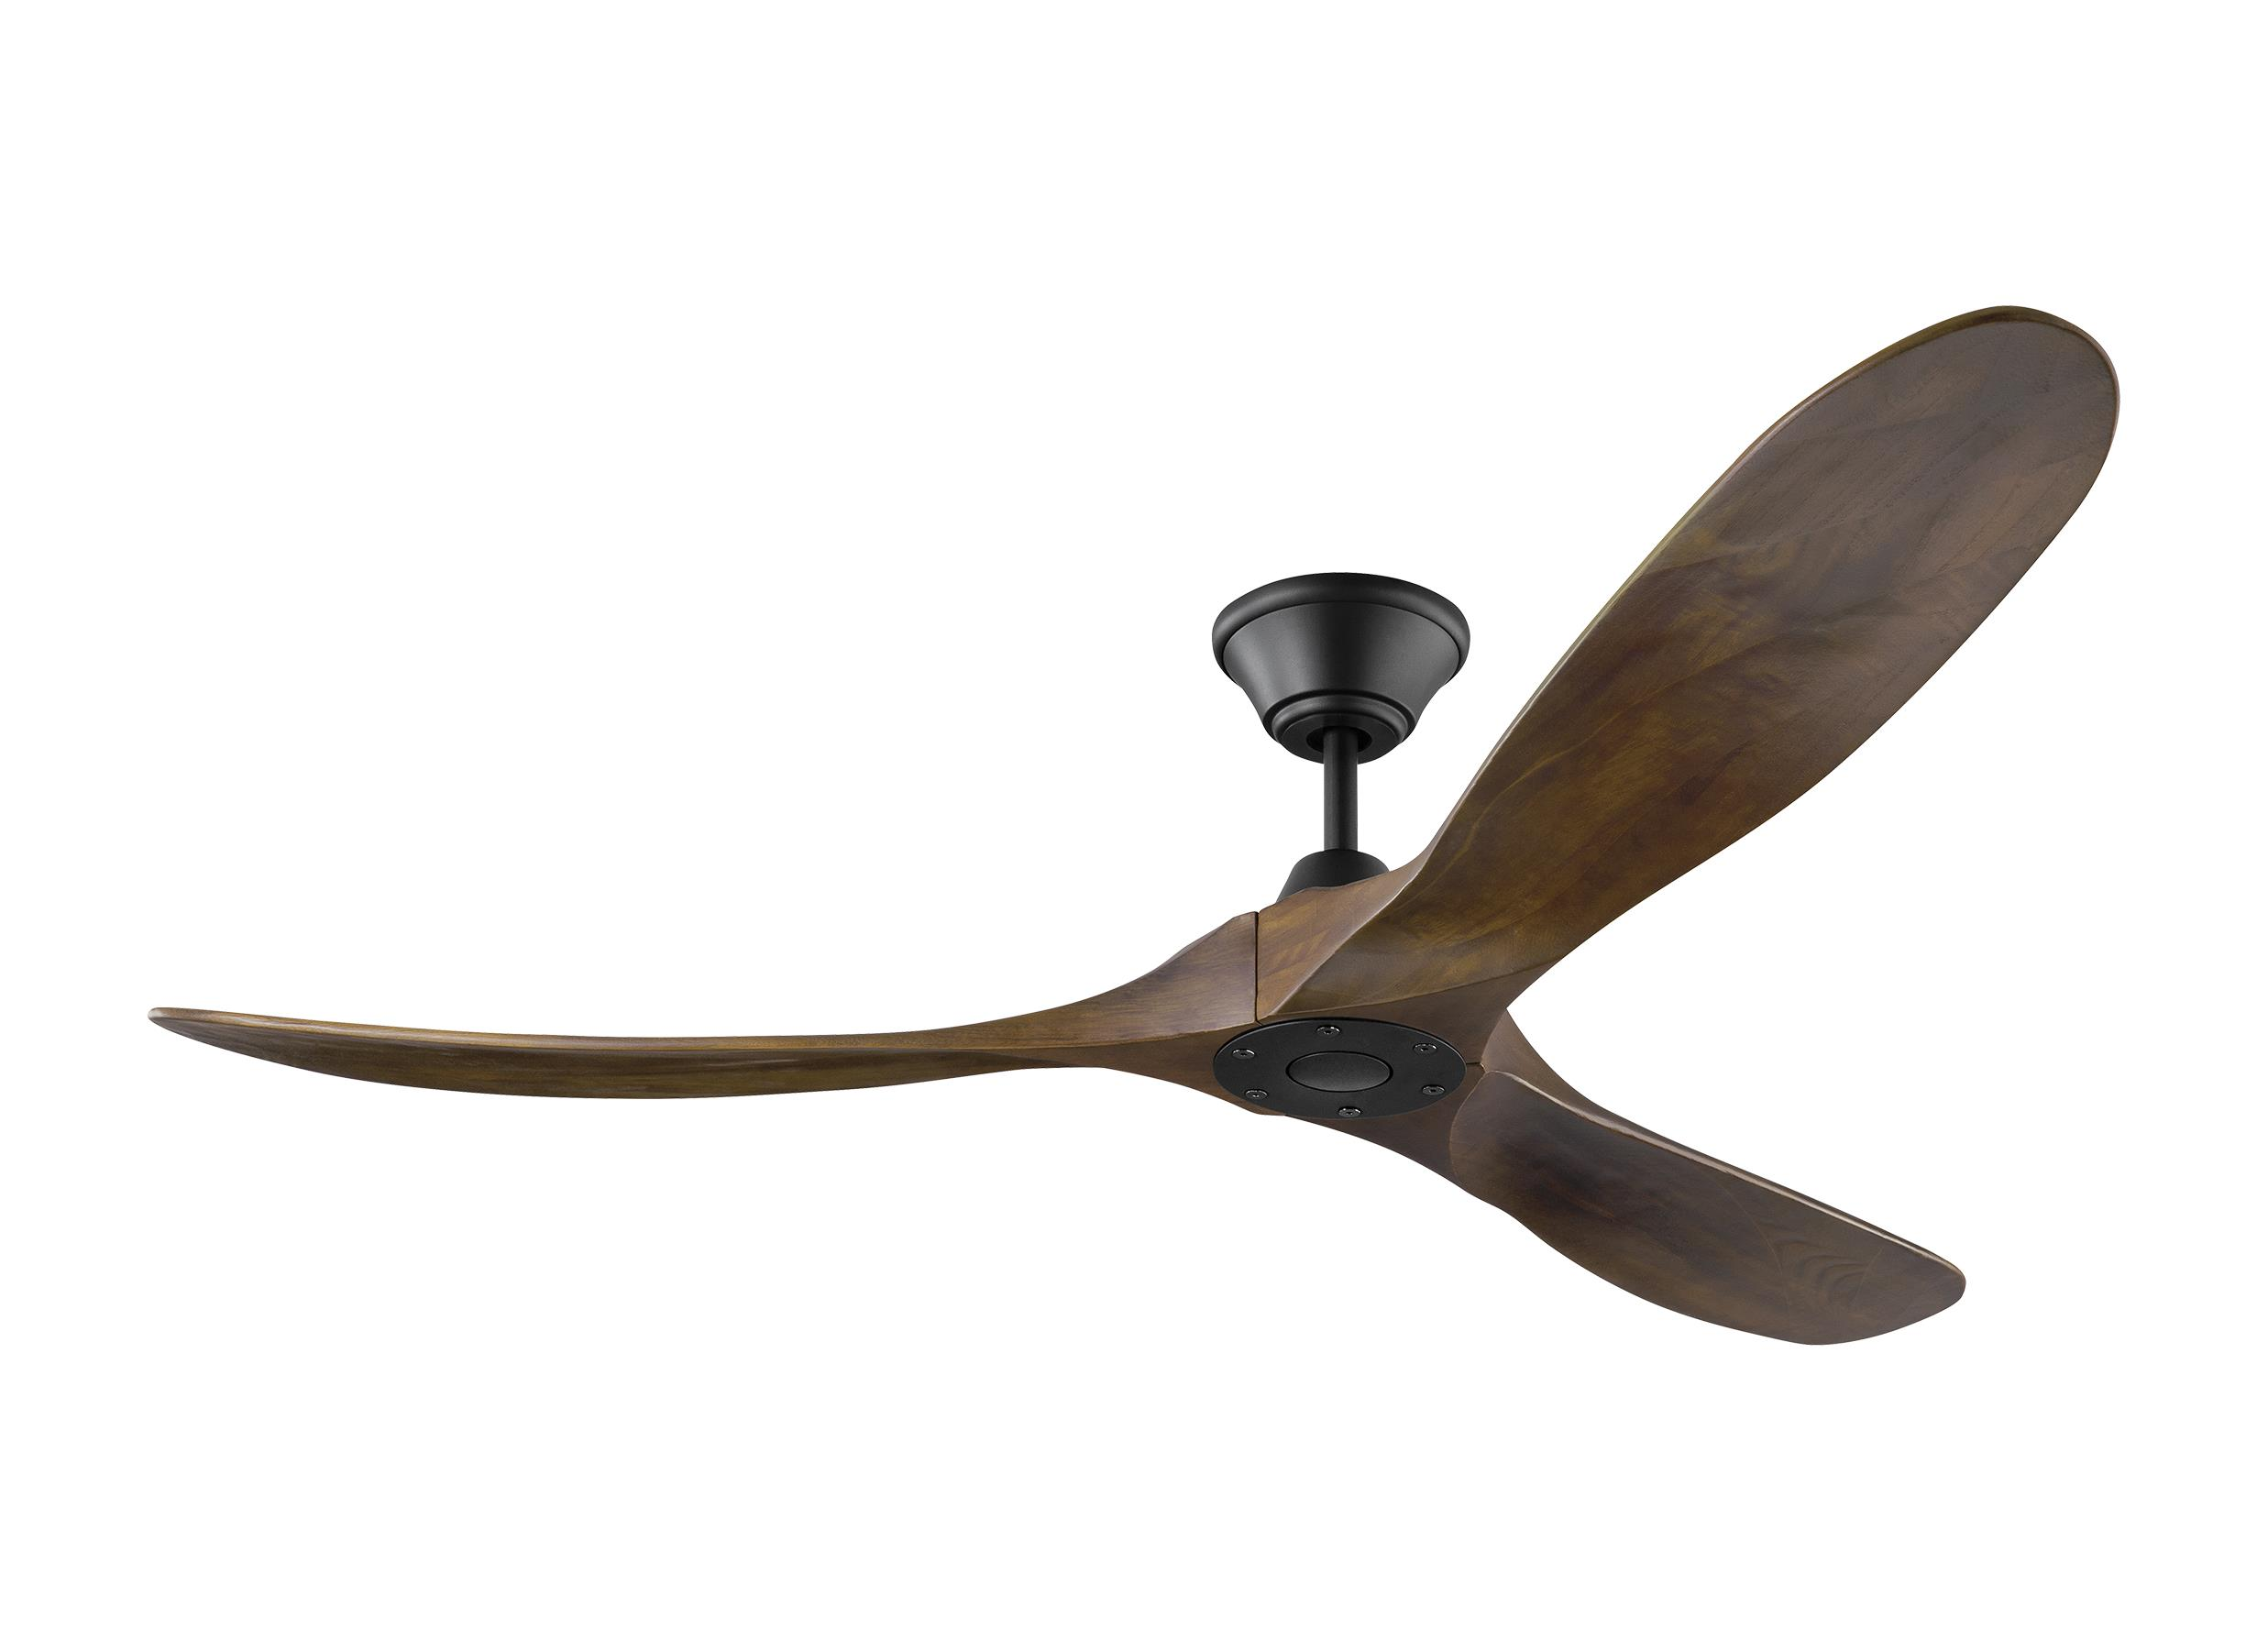 Wet damp rated outdoor ceiling fans by the monte carlo fan company 3mavr60bk mozeypictures Image collections